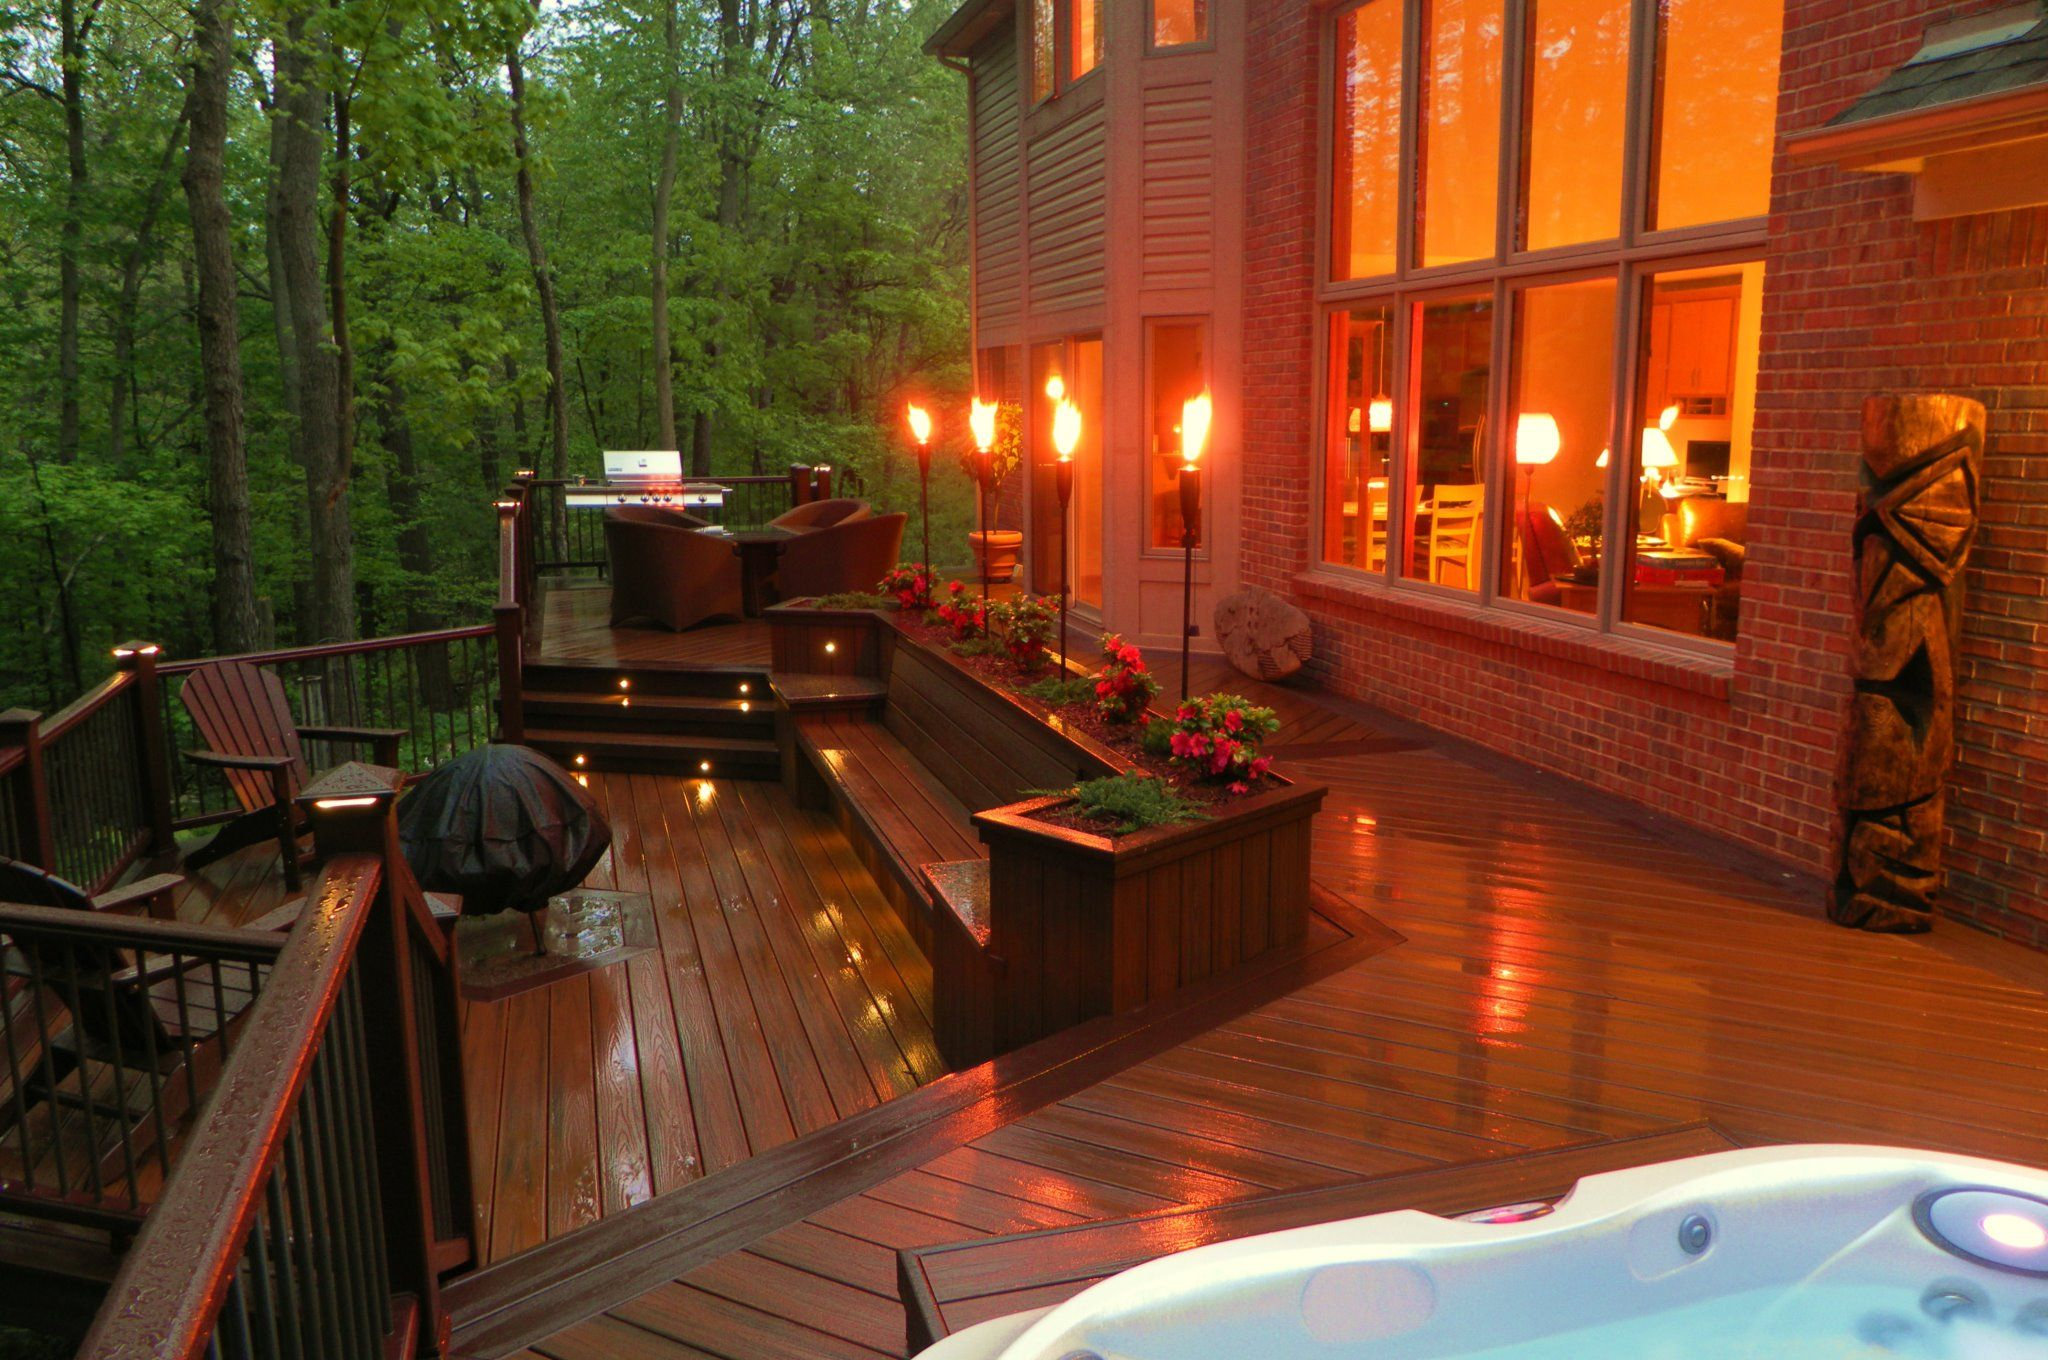 Feature light fancy outdoor deck lighting ideasoutdoor deck feature light fancy outdoor deck lighting ideasoutdoor deck aloadofball Gallery